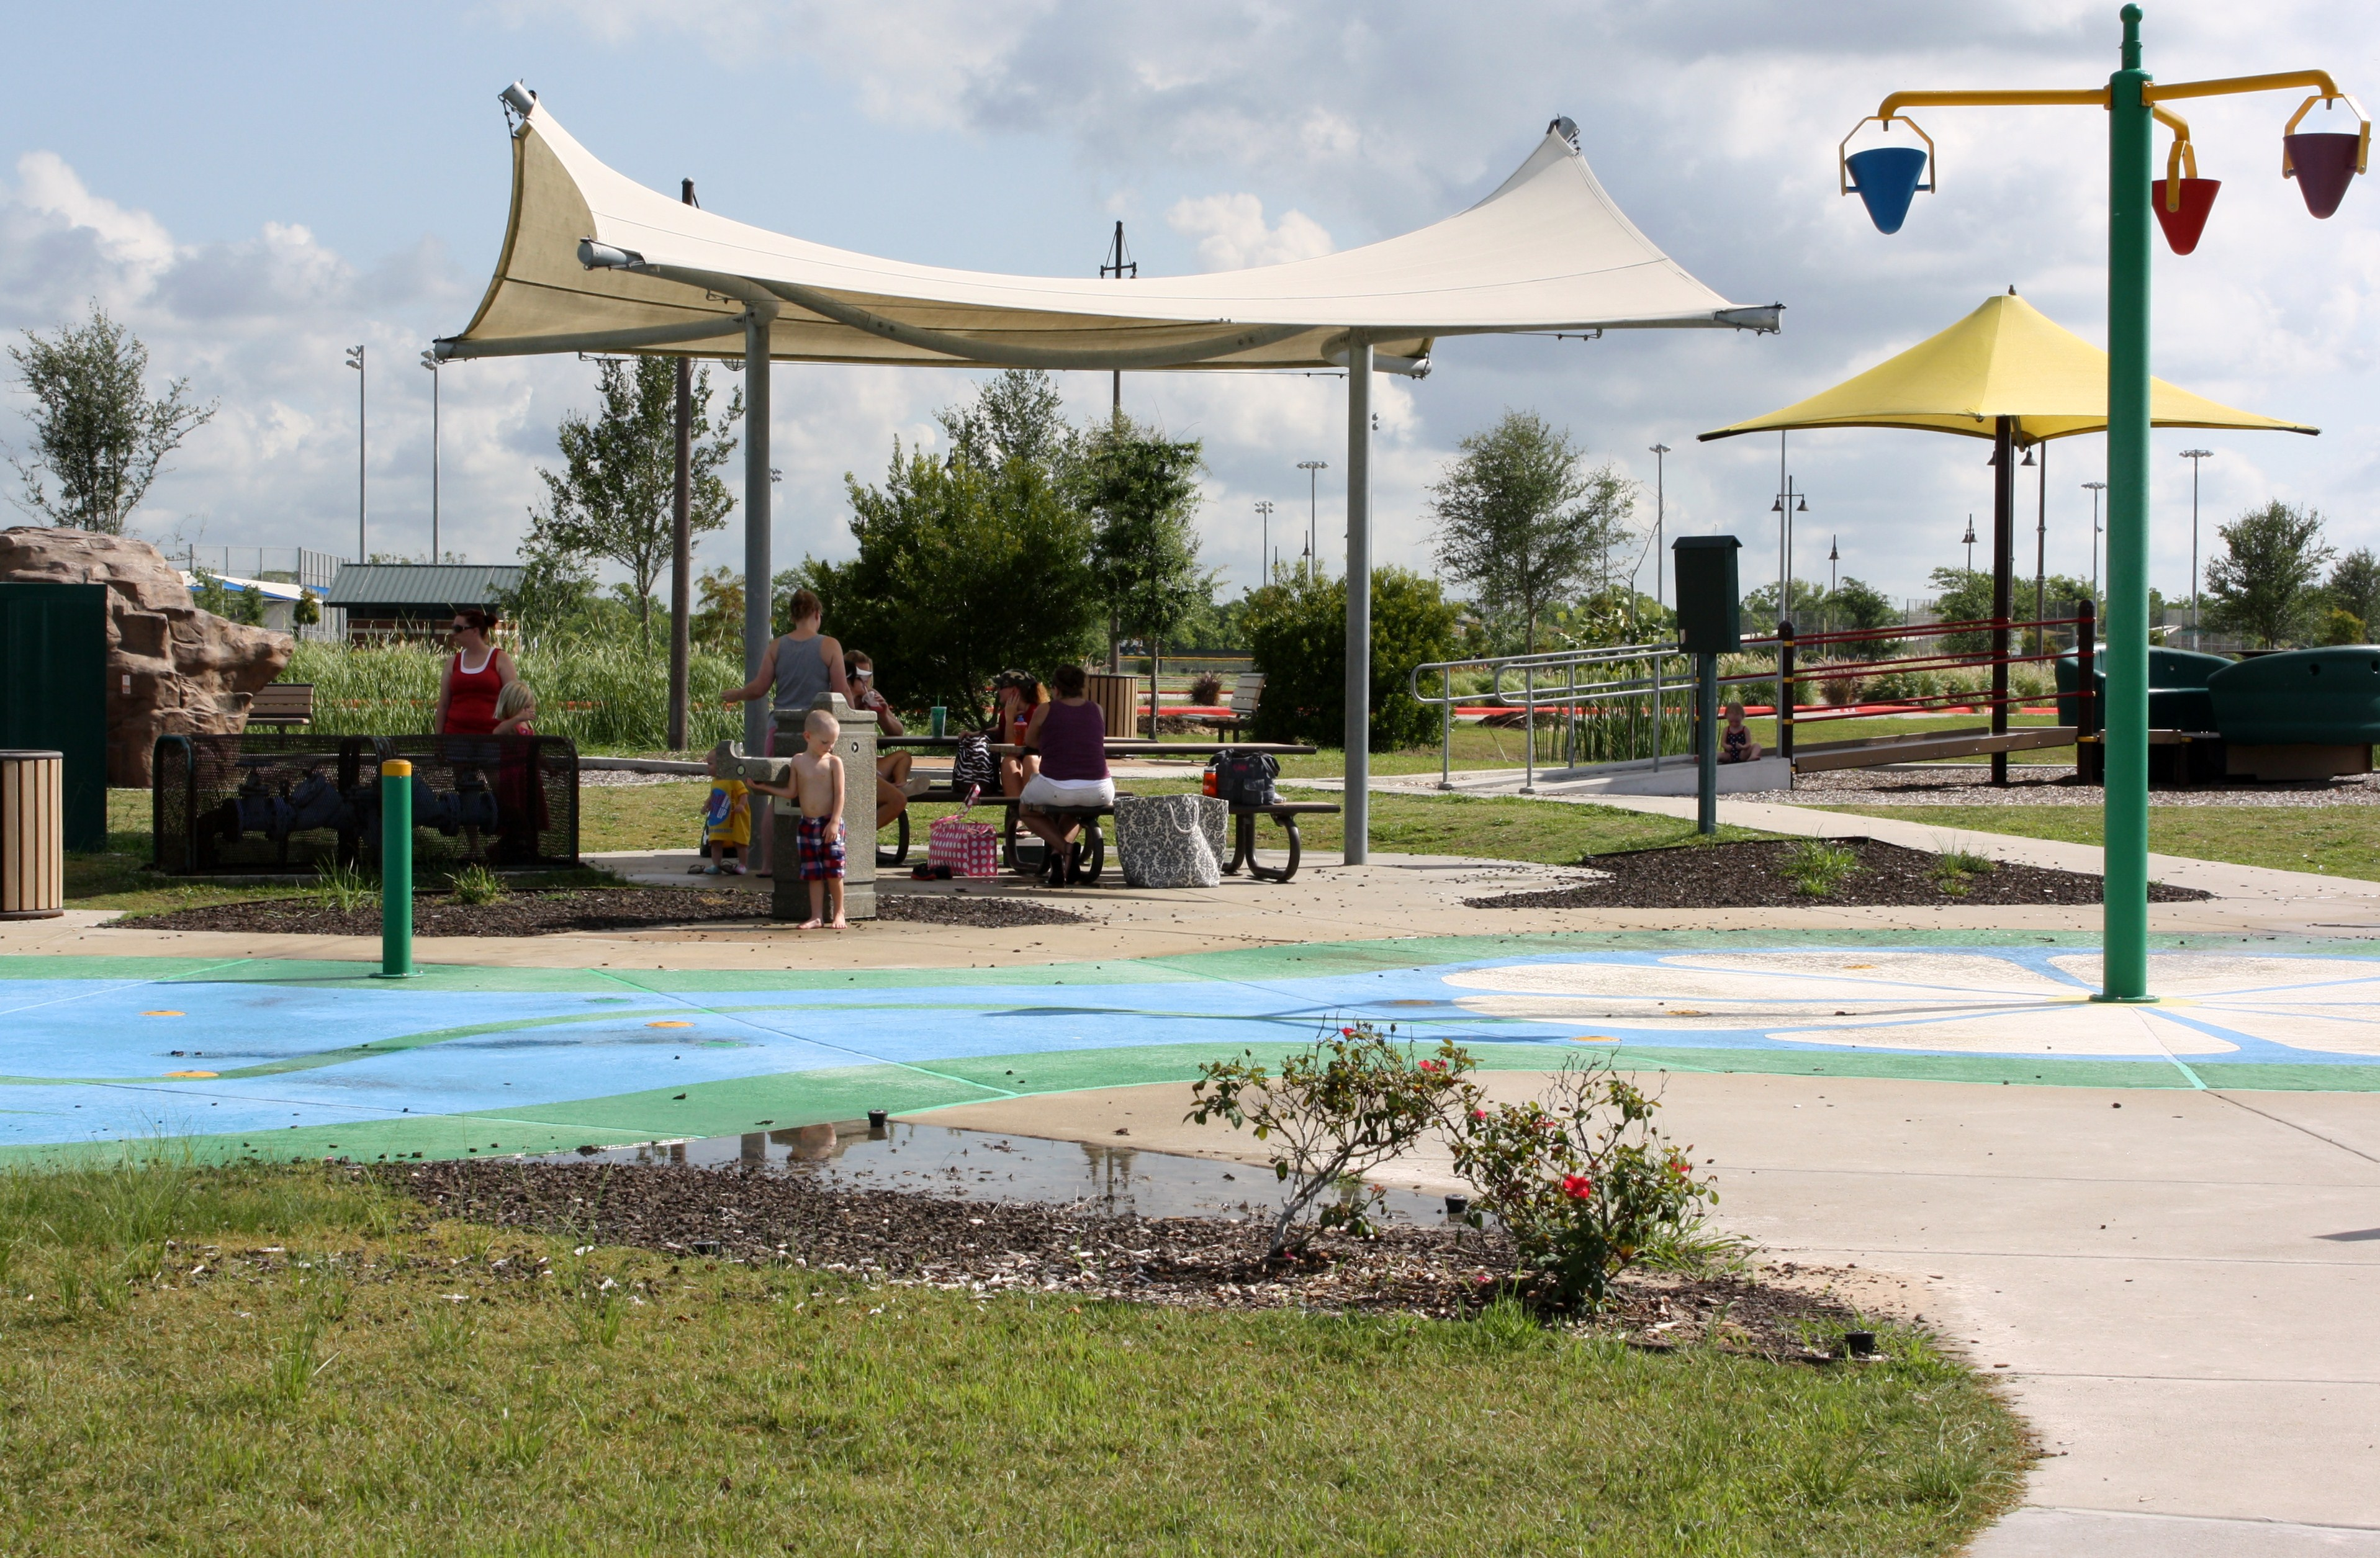 White Canopy and splash pad